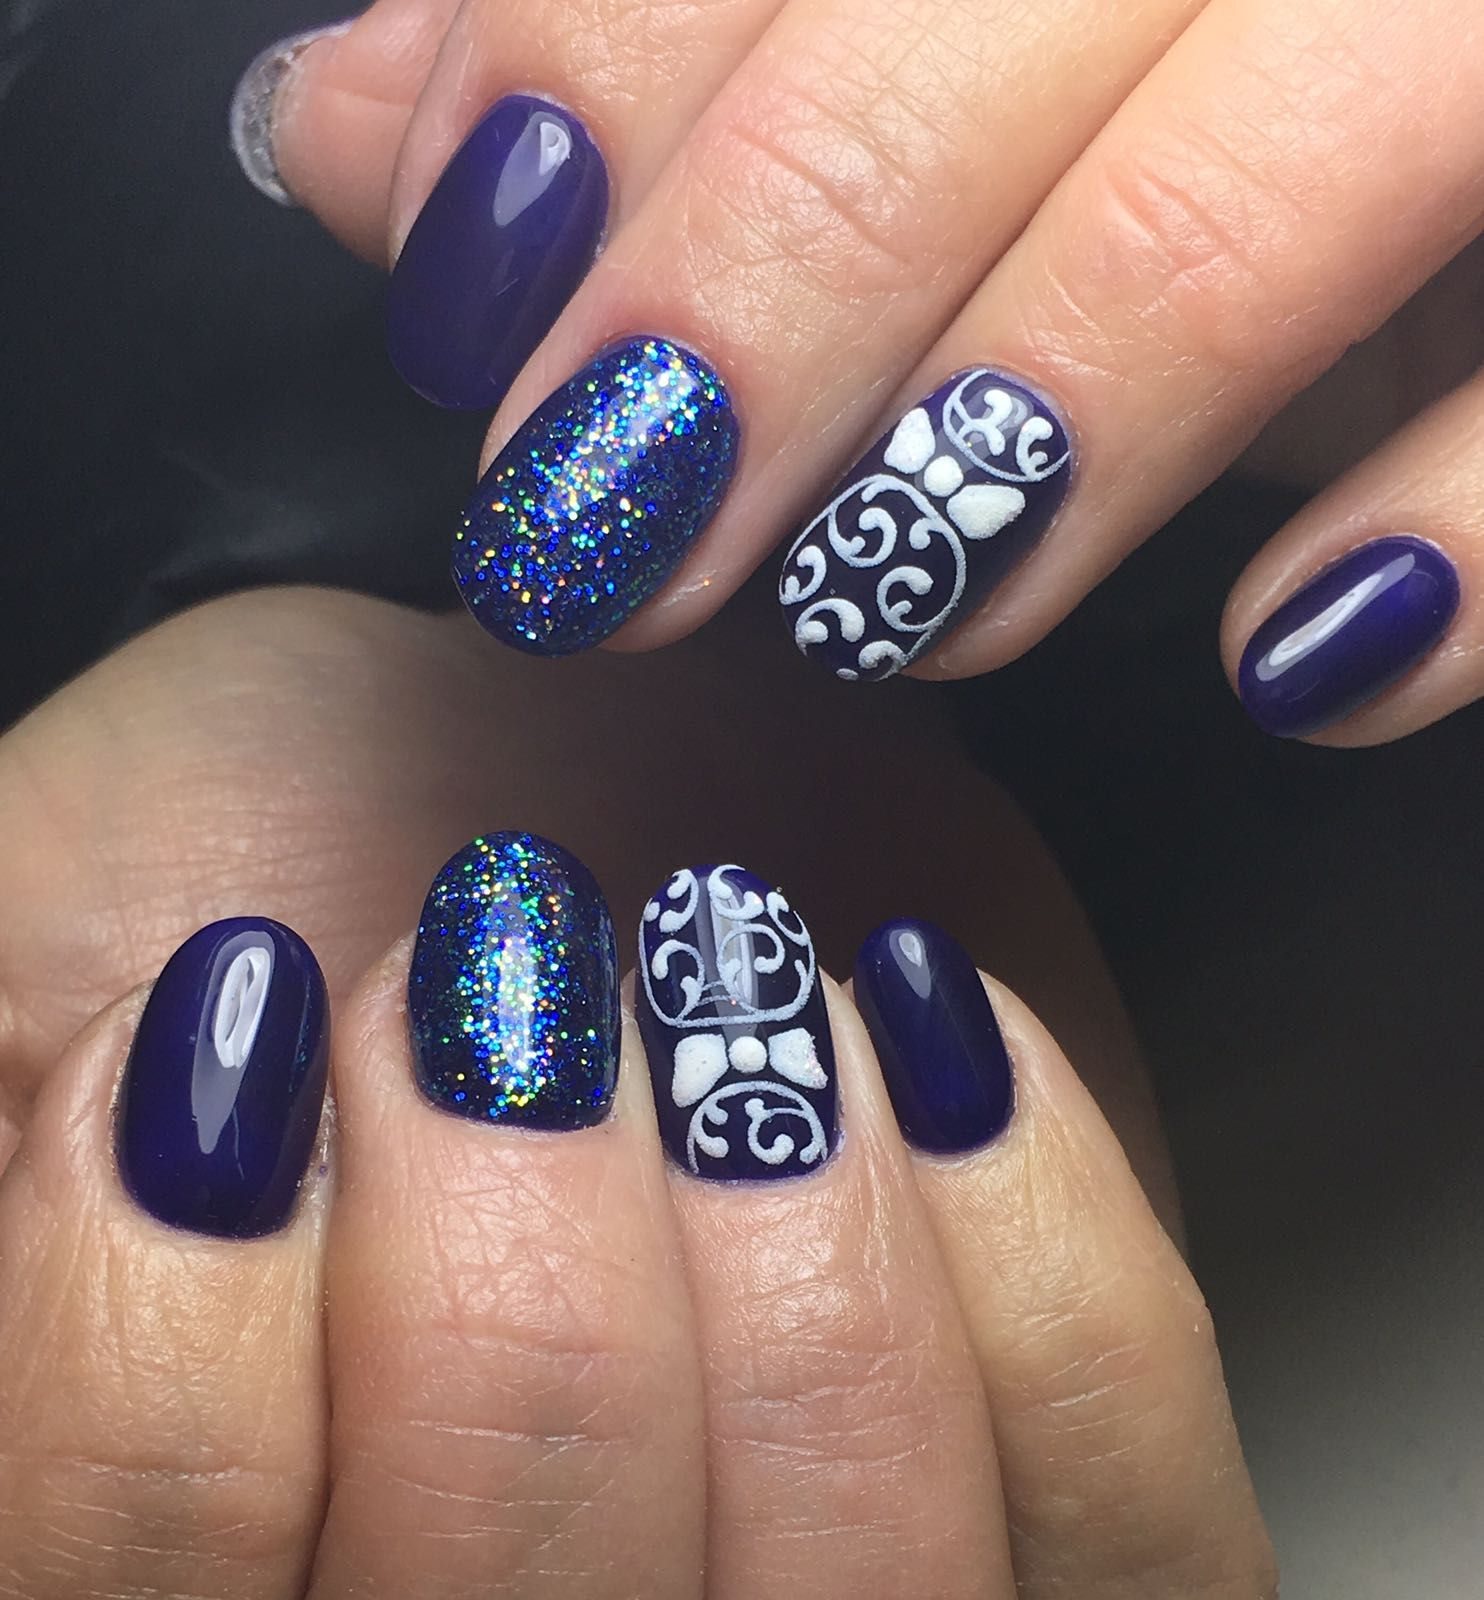 Pin by Leslie Getwood on Nail art   Pinterest   Salon nails and Salons